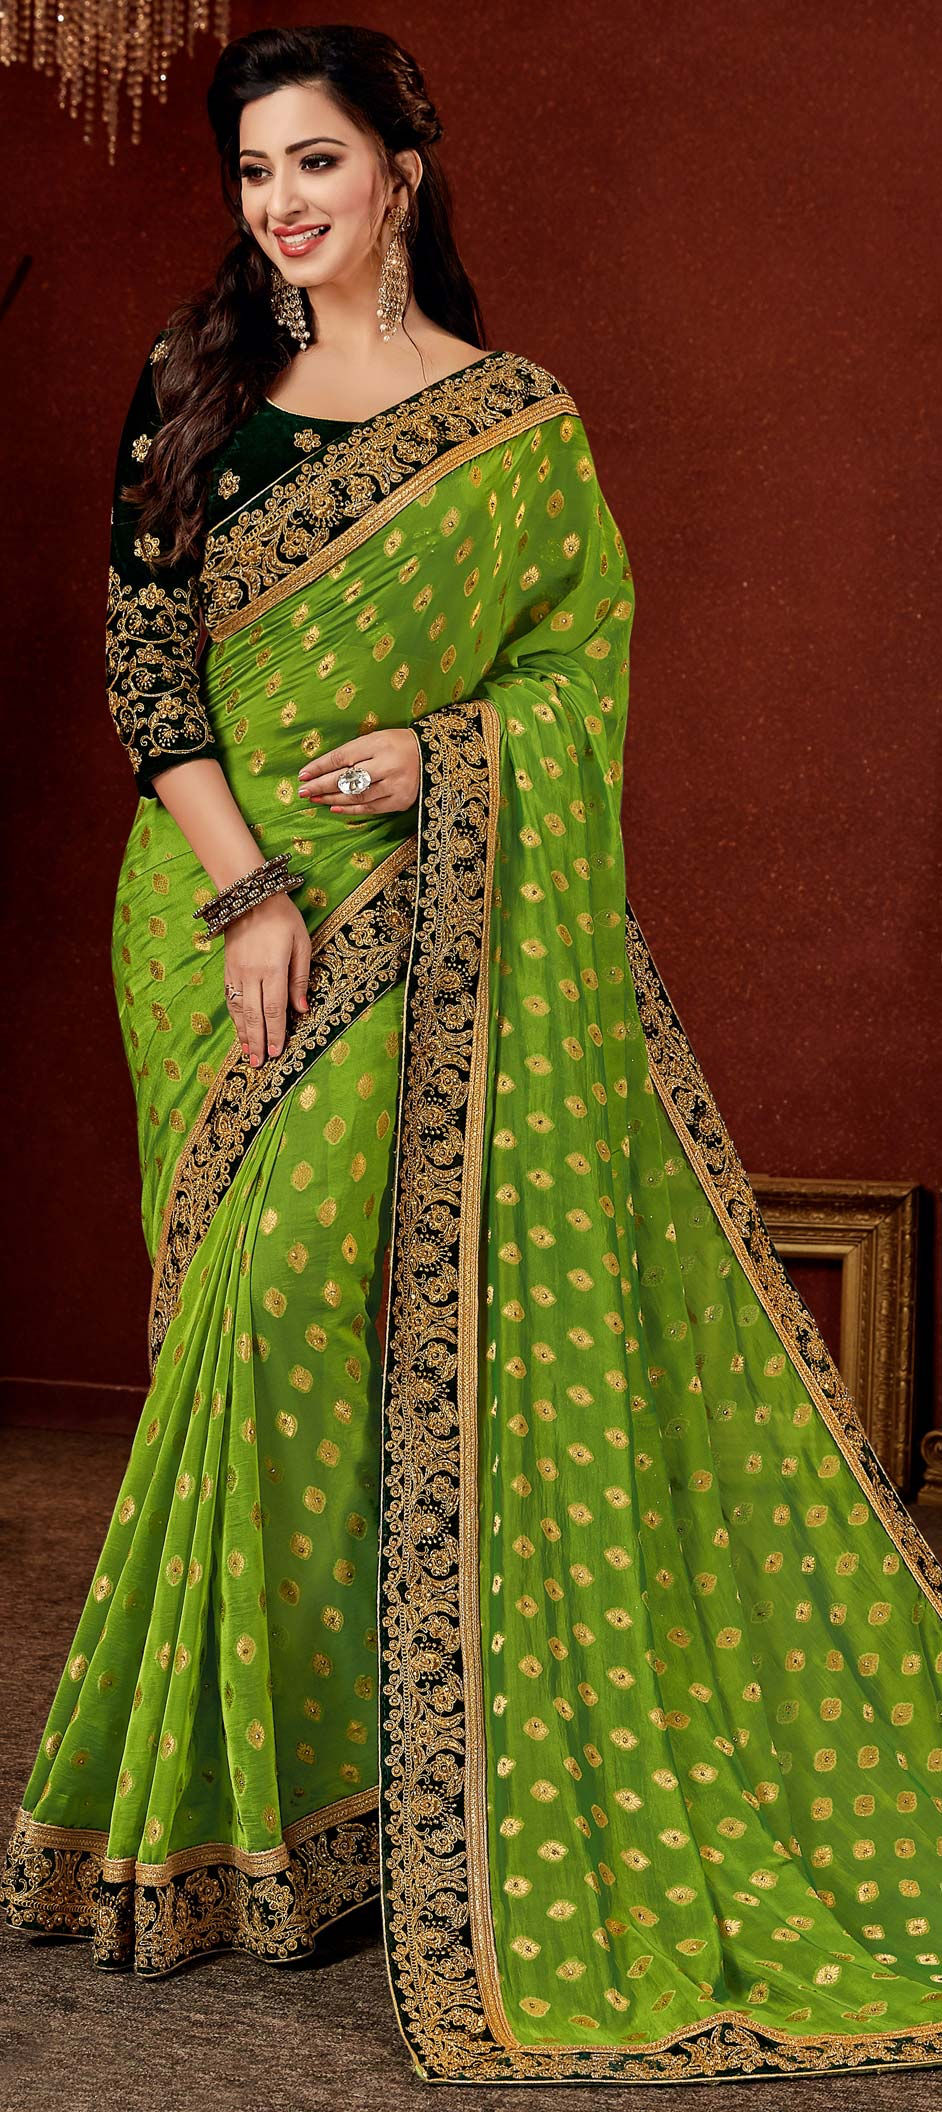 Brocade Bollywood Saree in Green with Border work